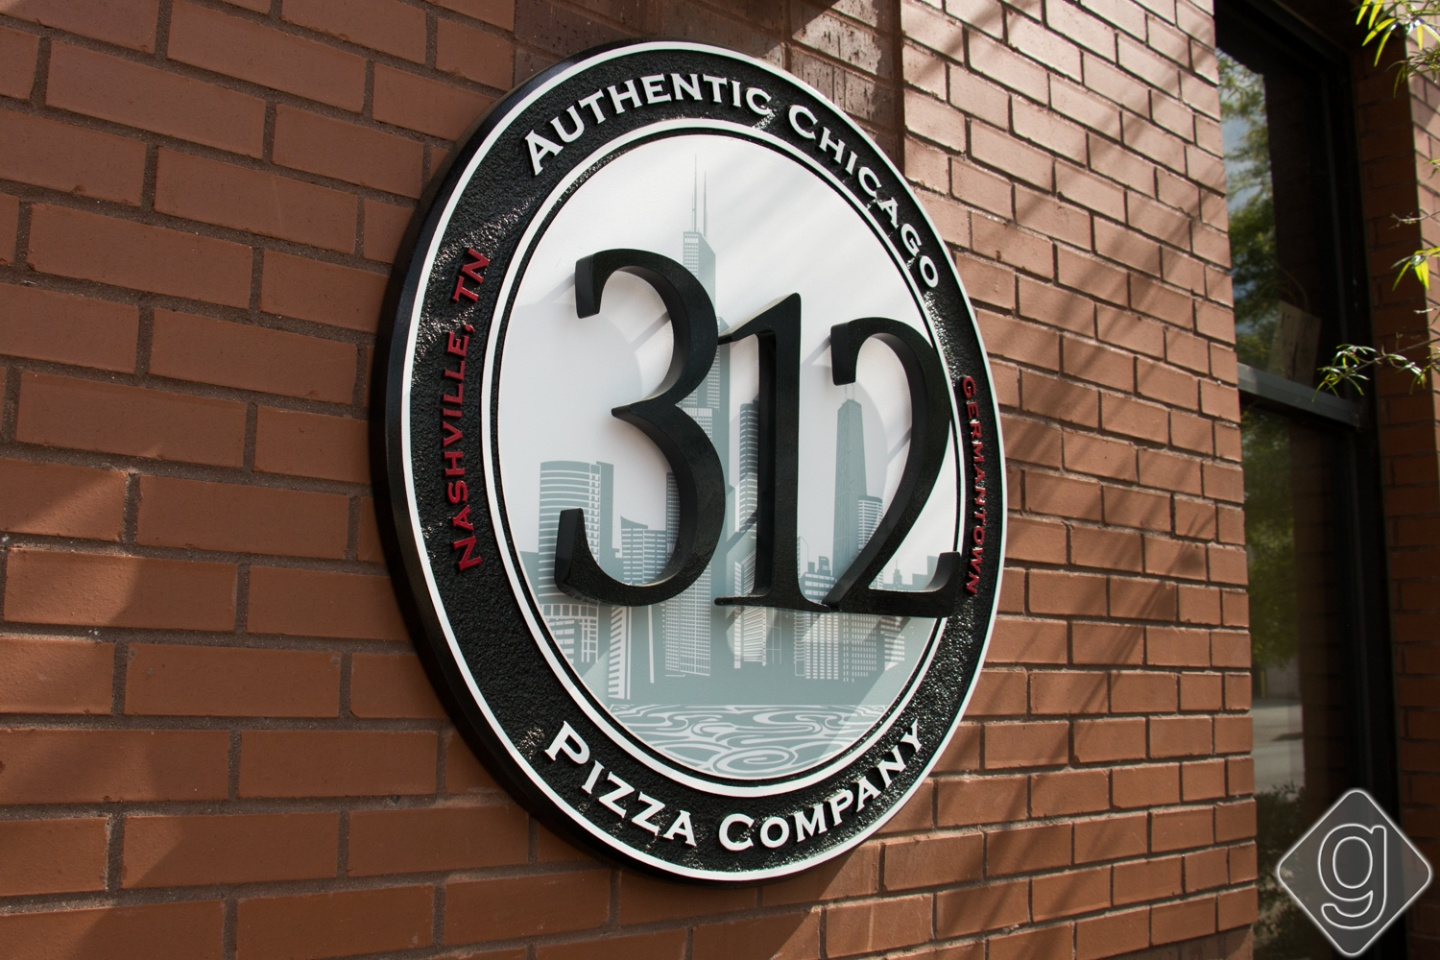 312 Pizza Company - Nashville, TN - Germantown-17